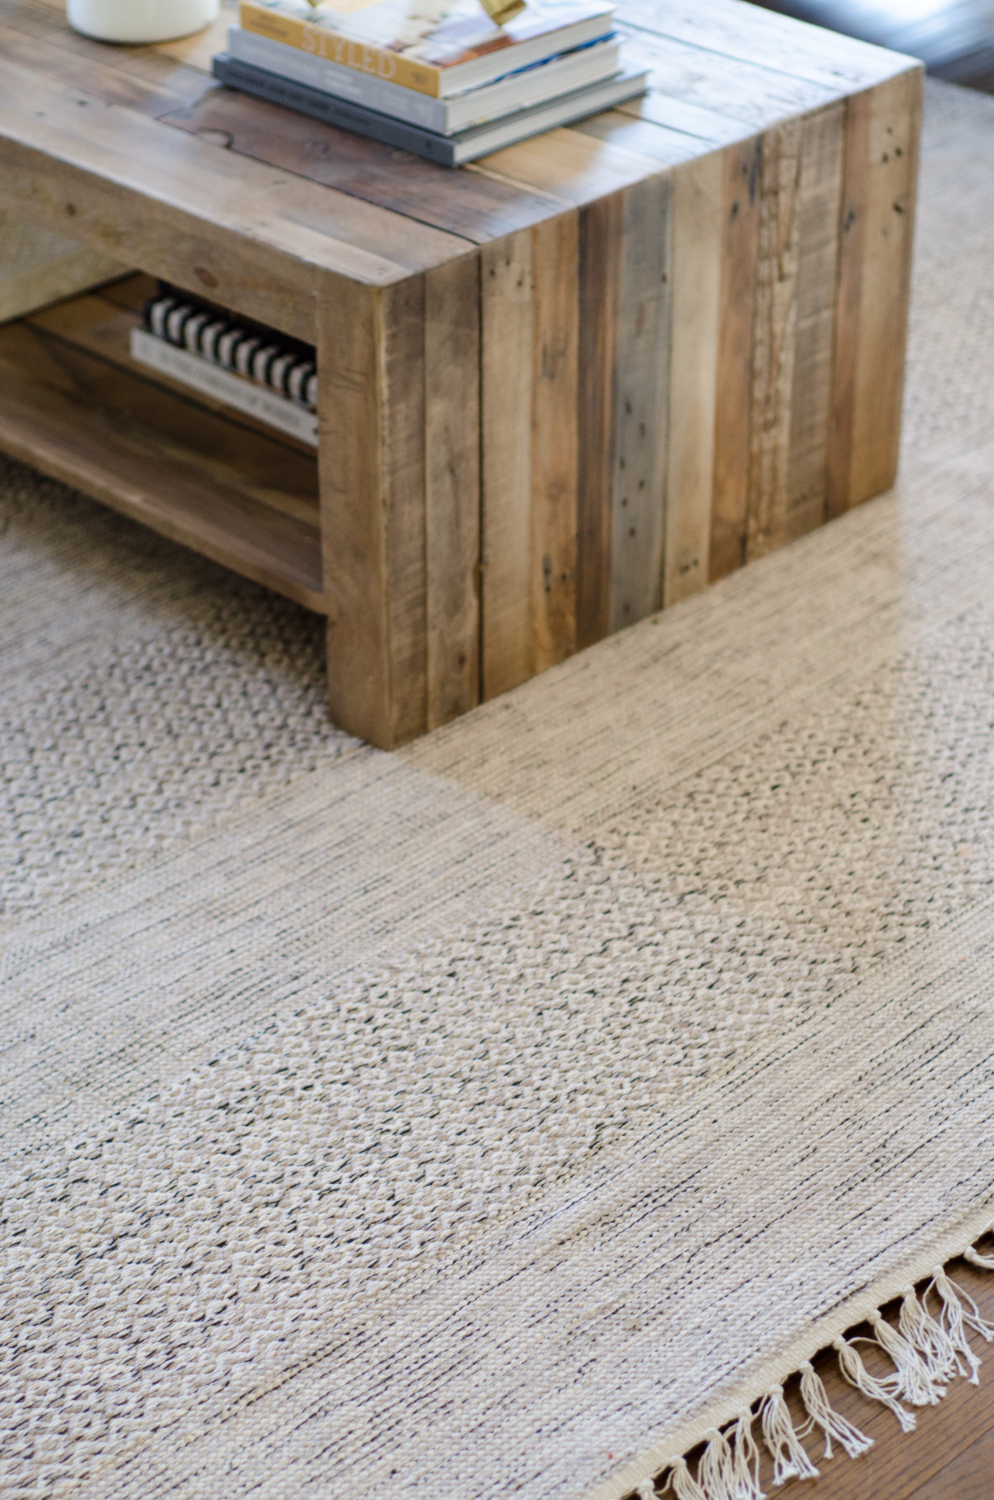 A family friendly rug made of flat weave cotton is shades of beige and grey.